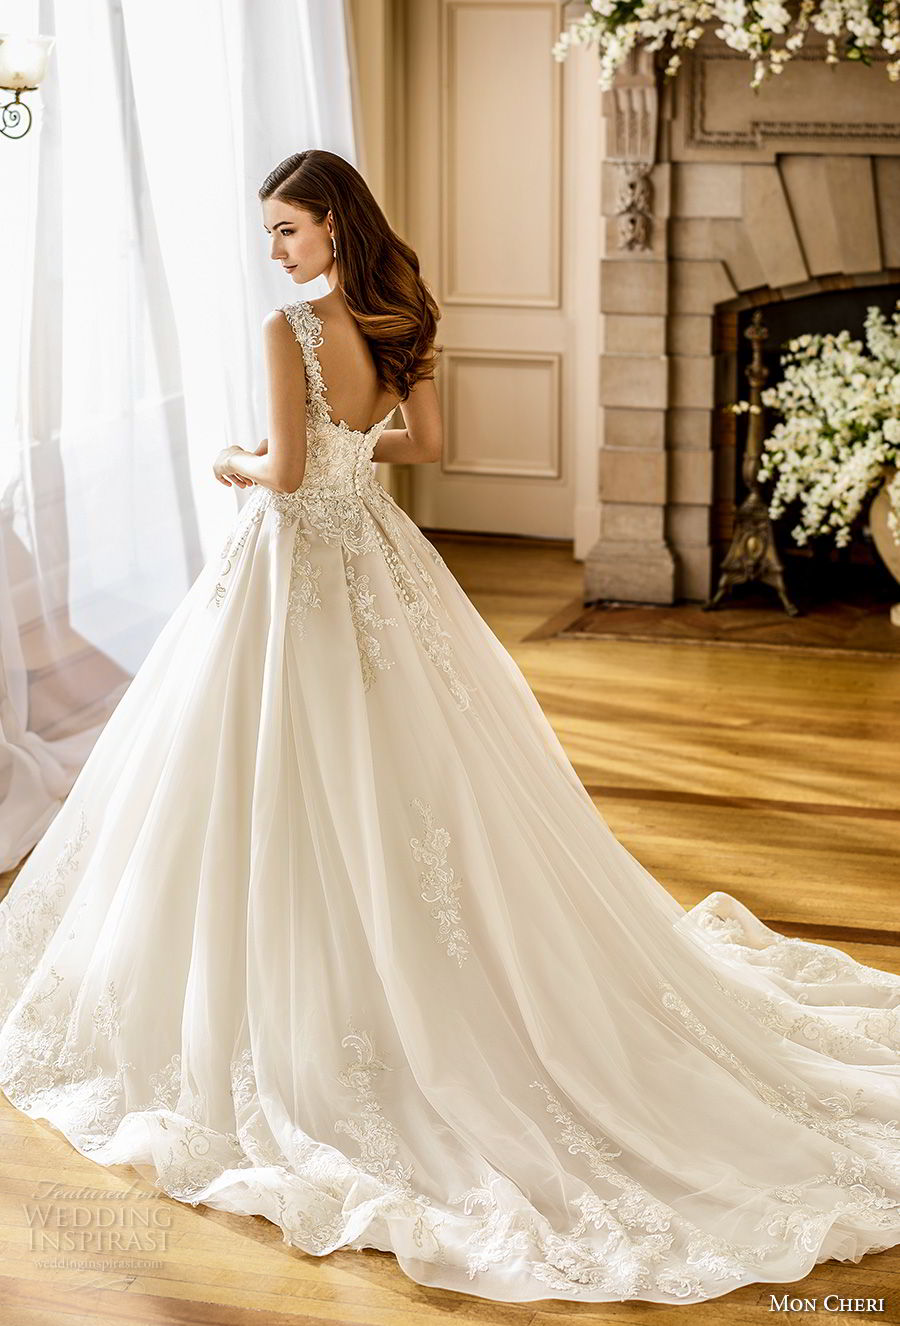 mon cheri fall 2017 bridal cap sleeves sweetheart neckline heavily embellished beaded bodice romantic ball gown a line wedding dress open back chapel train (202) bv